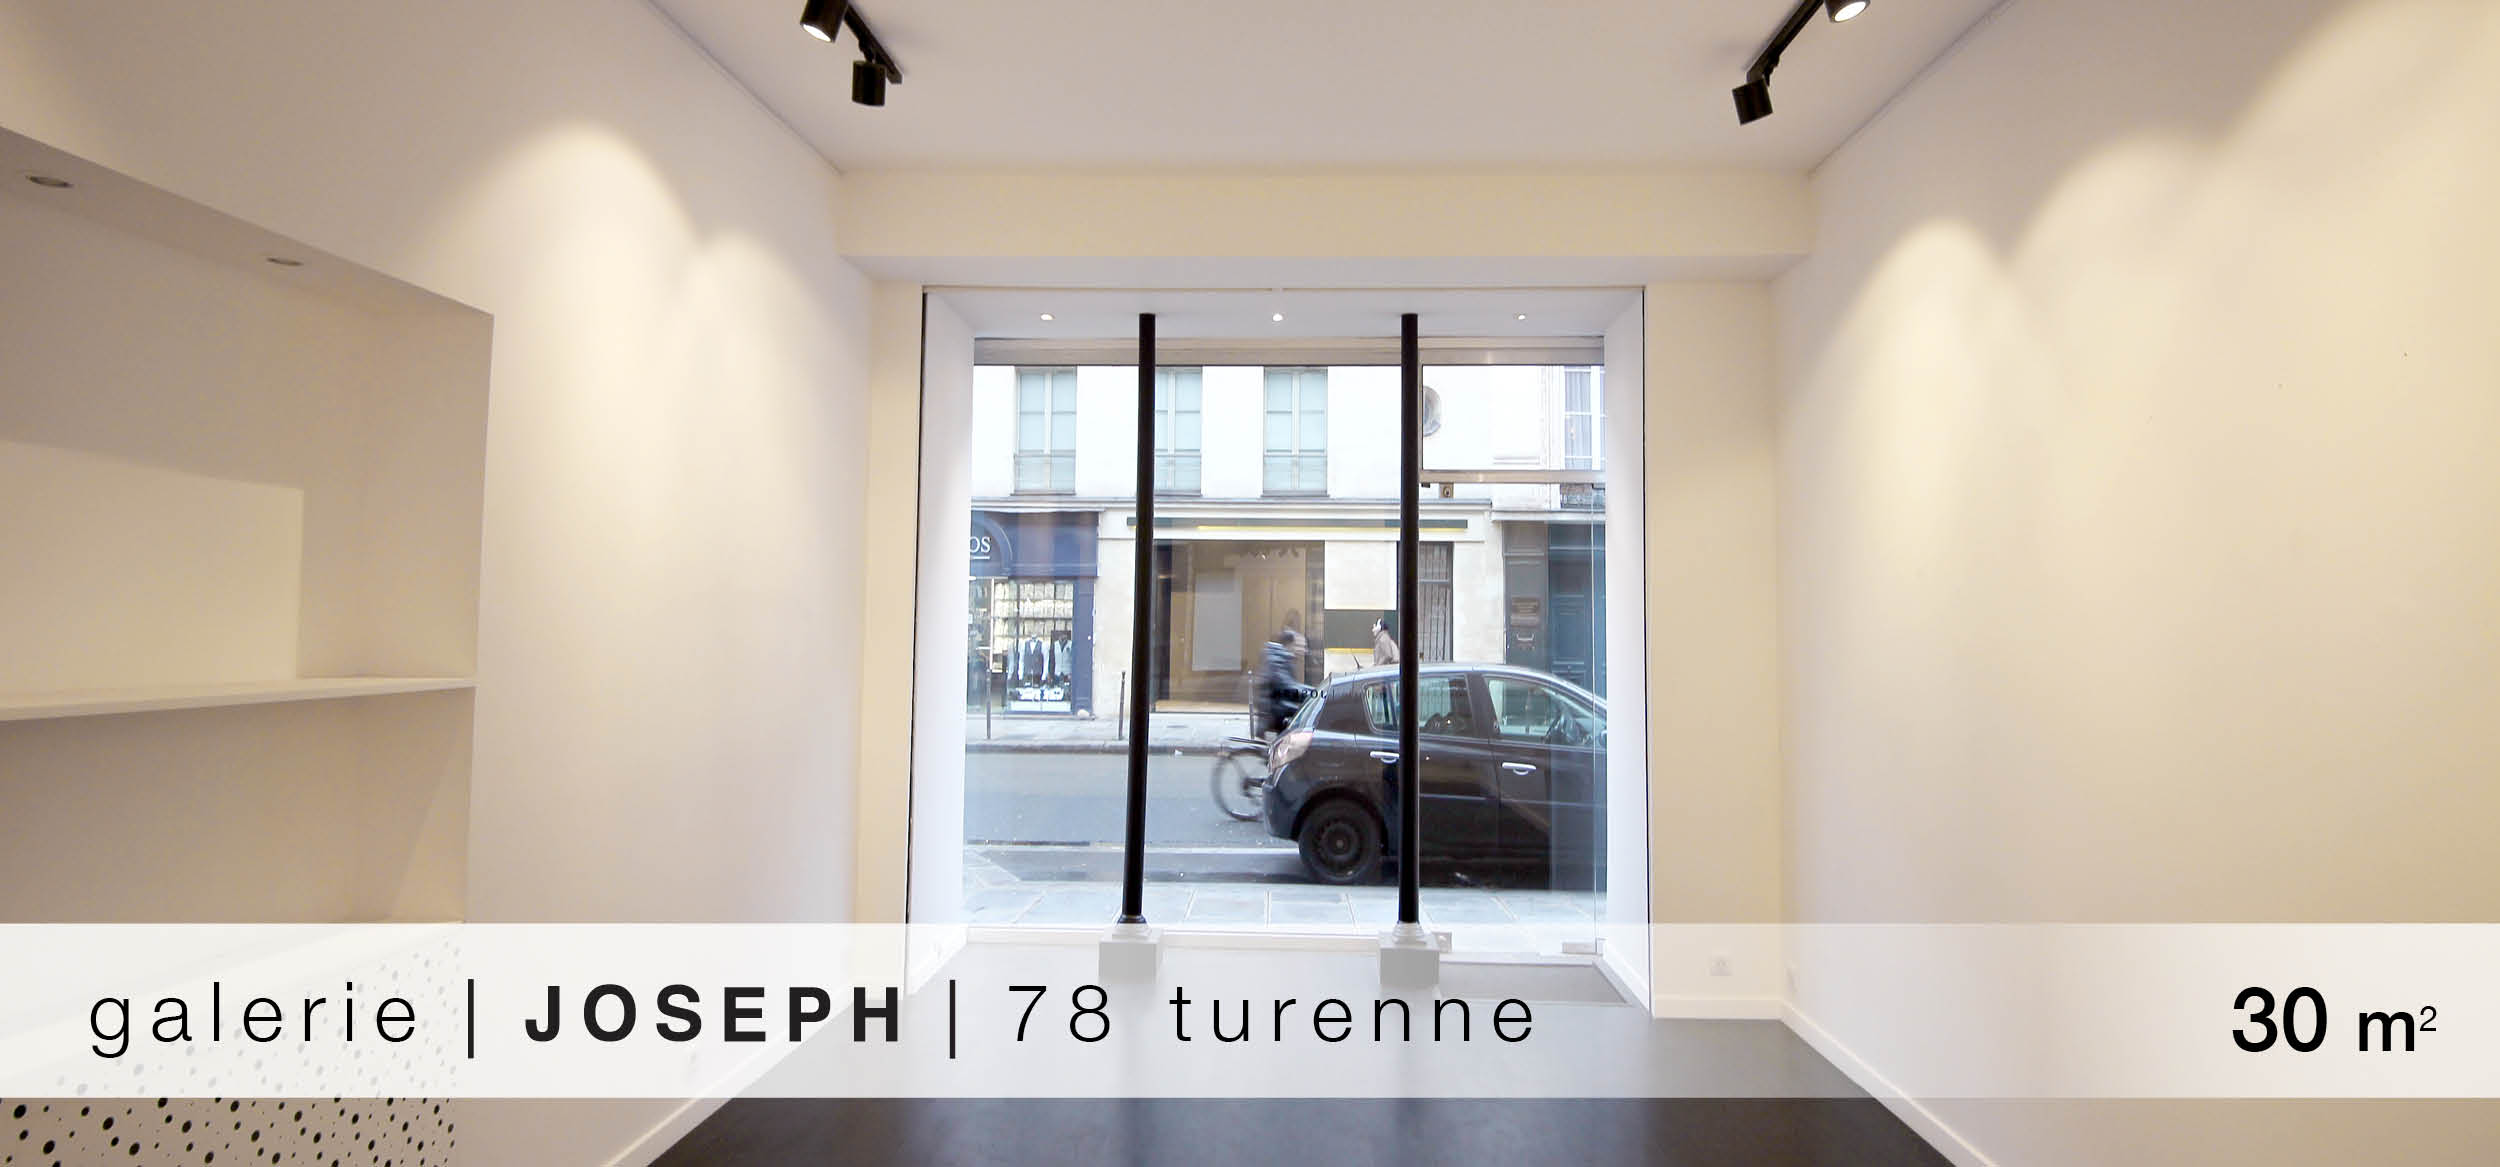 Galerie Joseph Turenne location showroom Turnenne